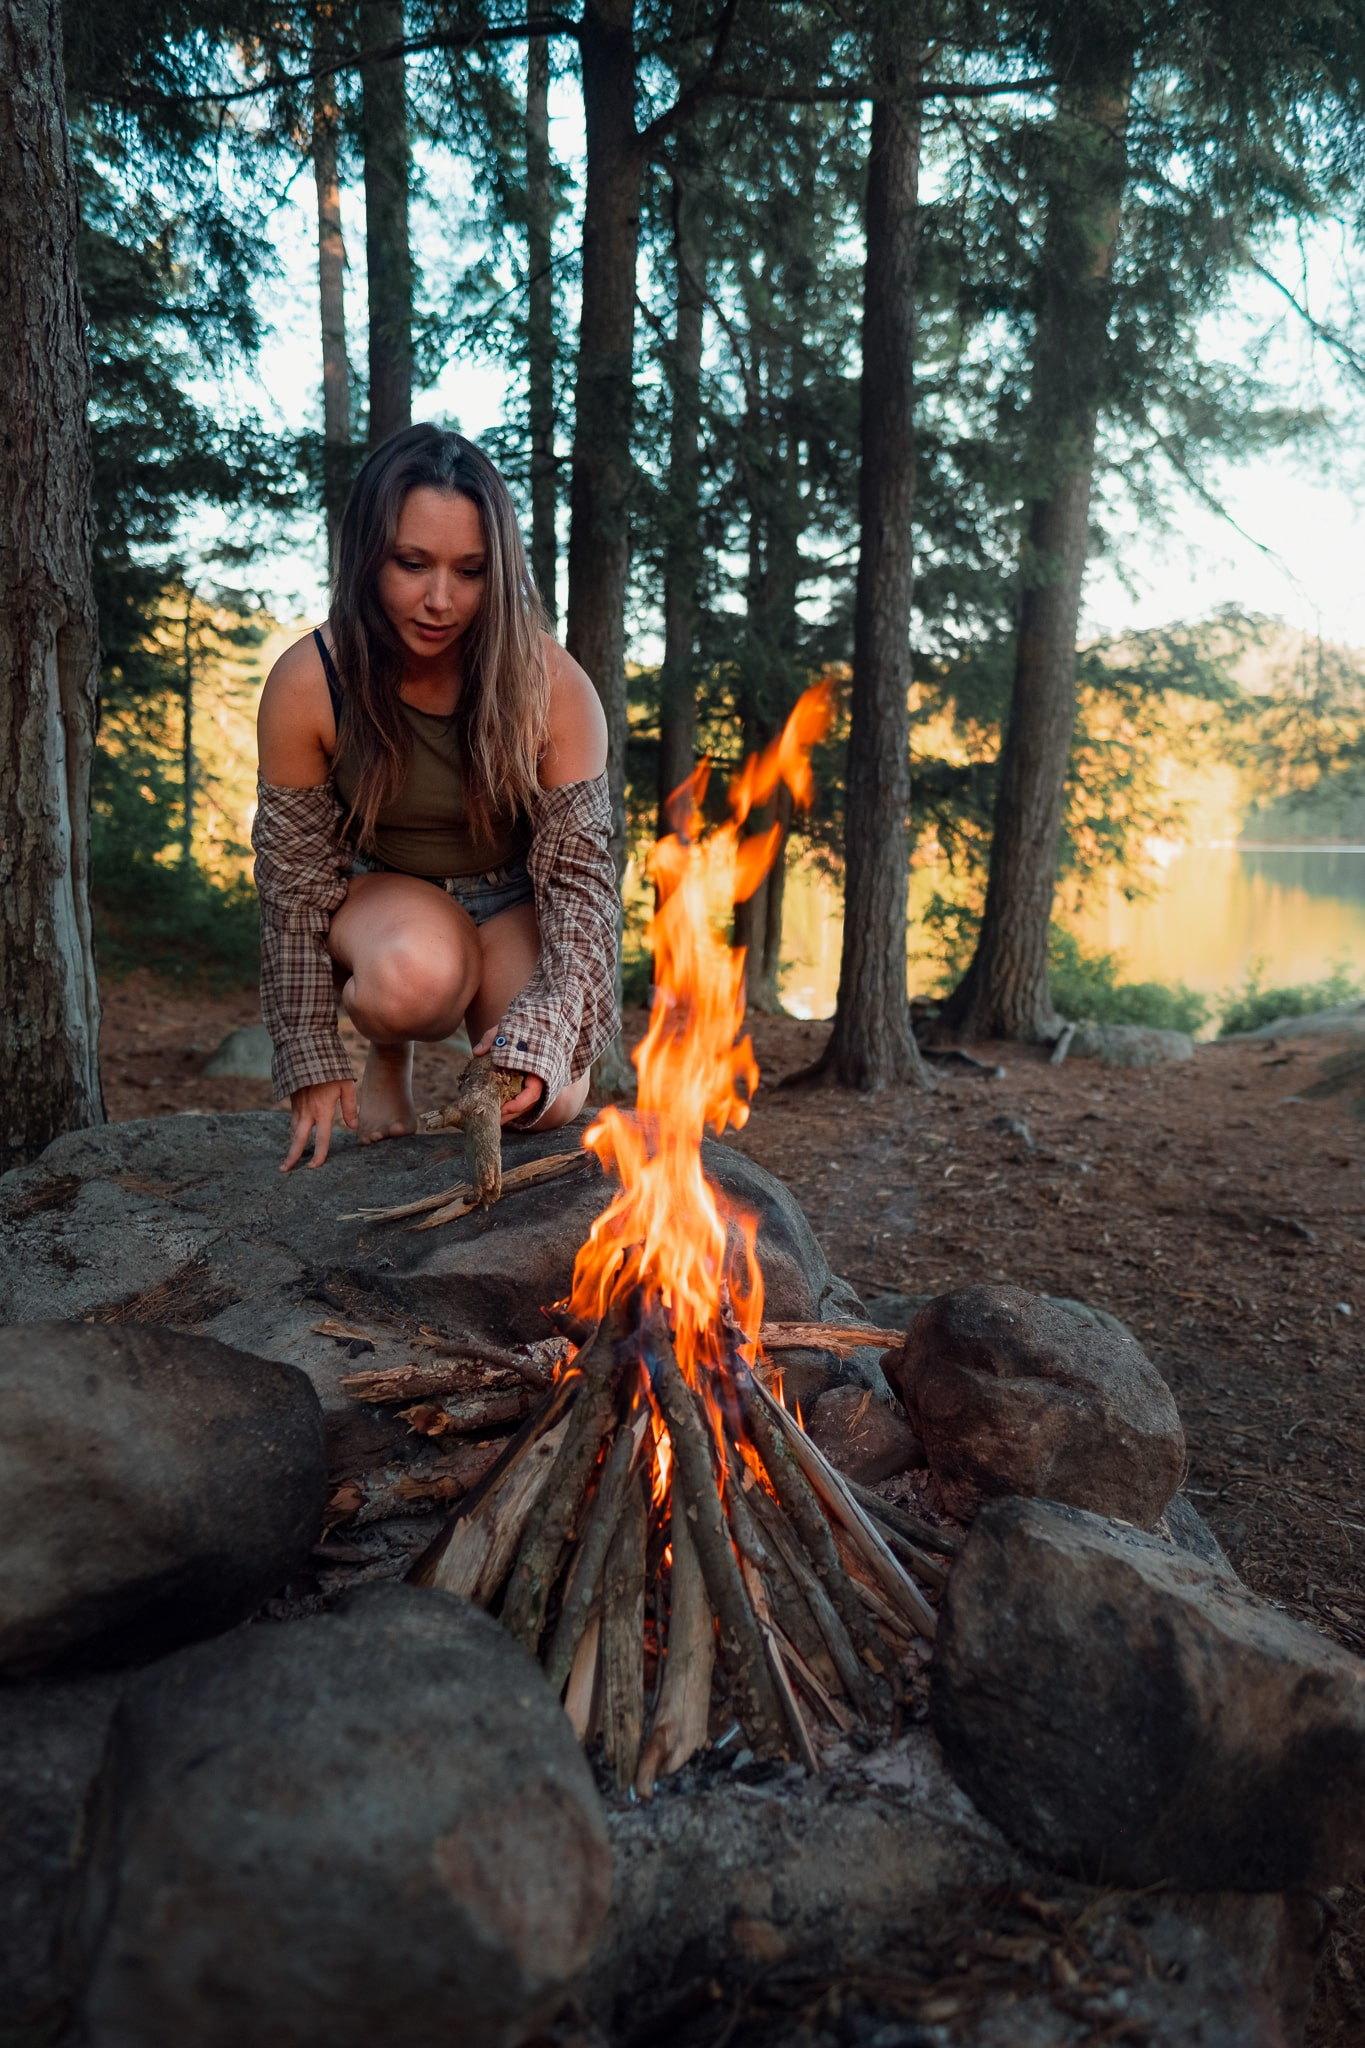 Campfire at Copperas Pond in Lake Placid in Upstate New York